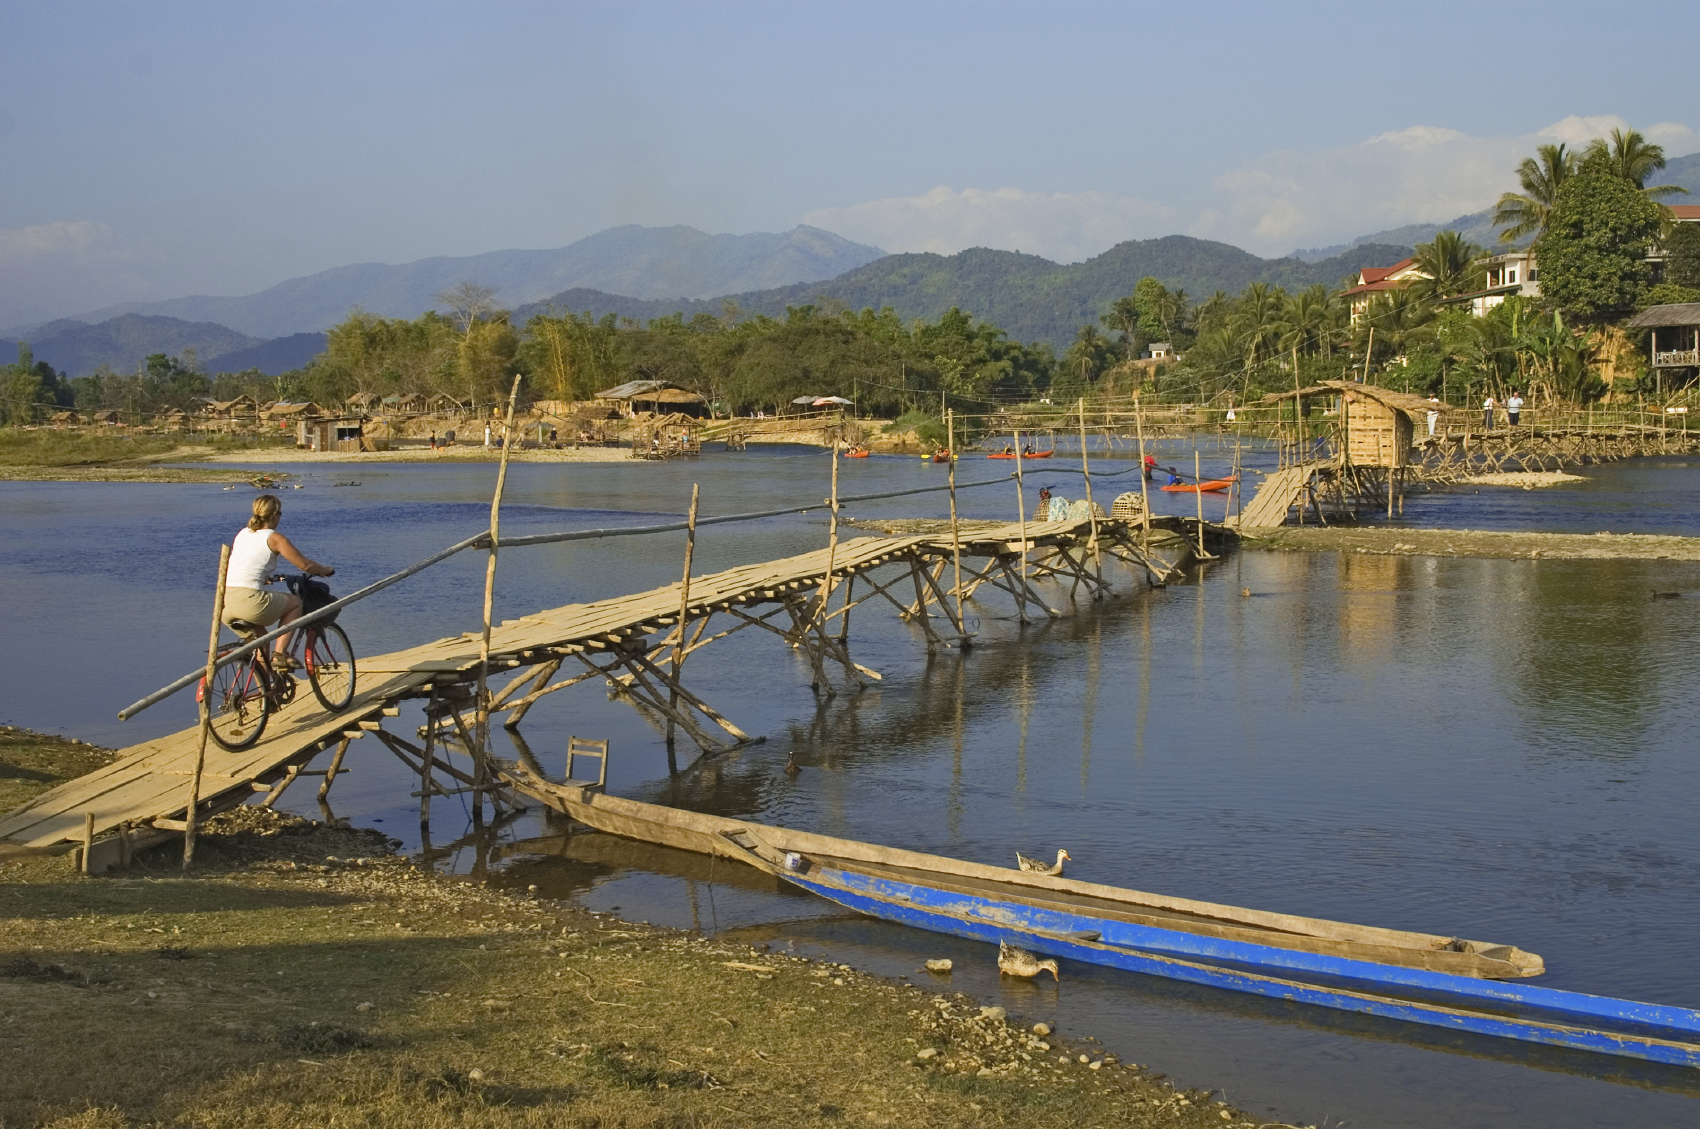 Mekong River in Laos part